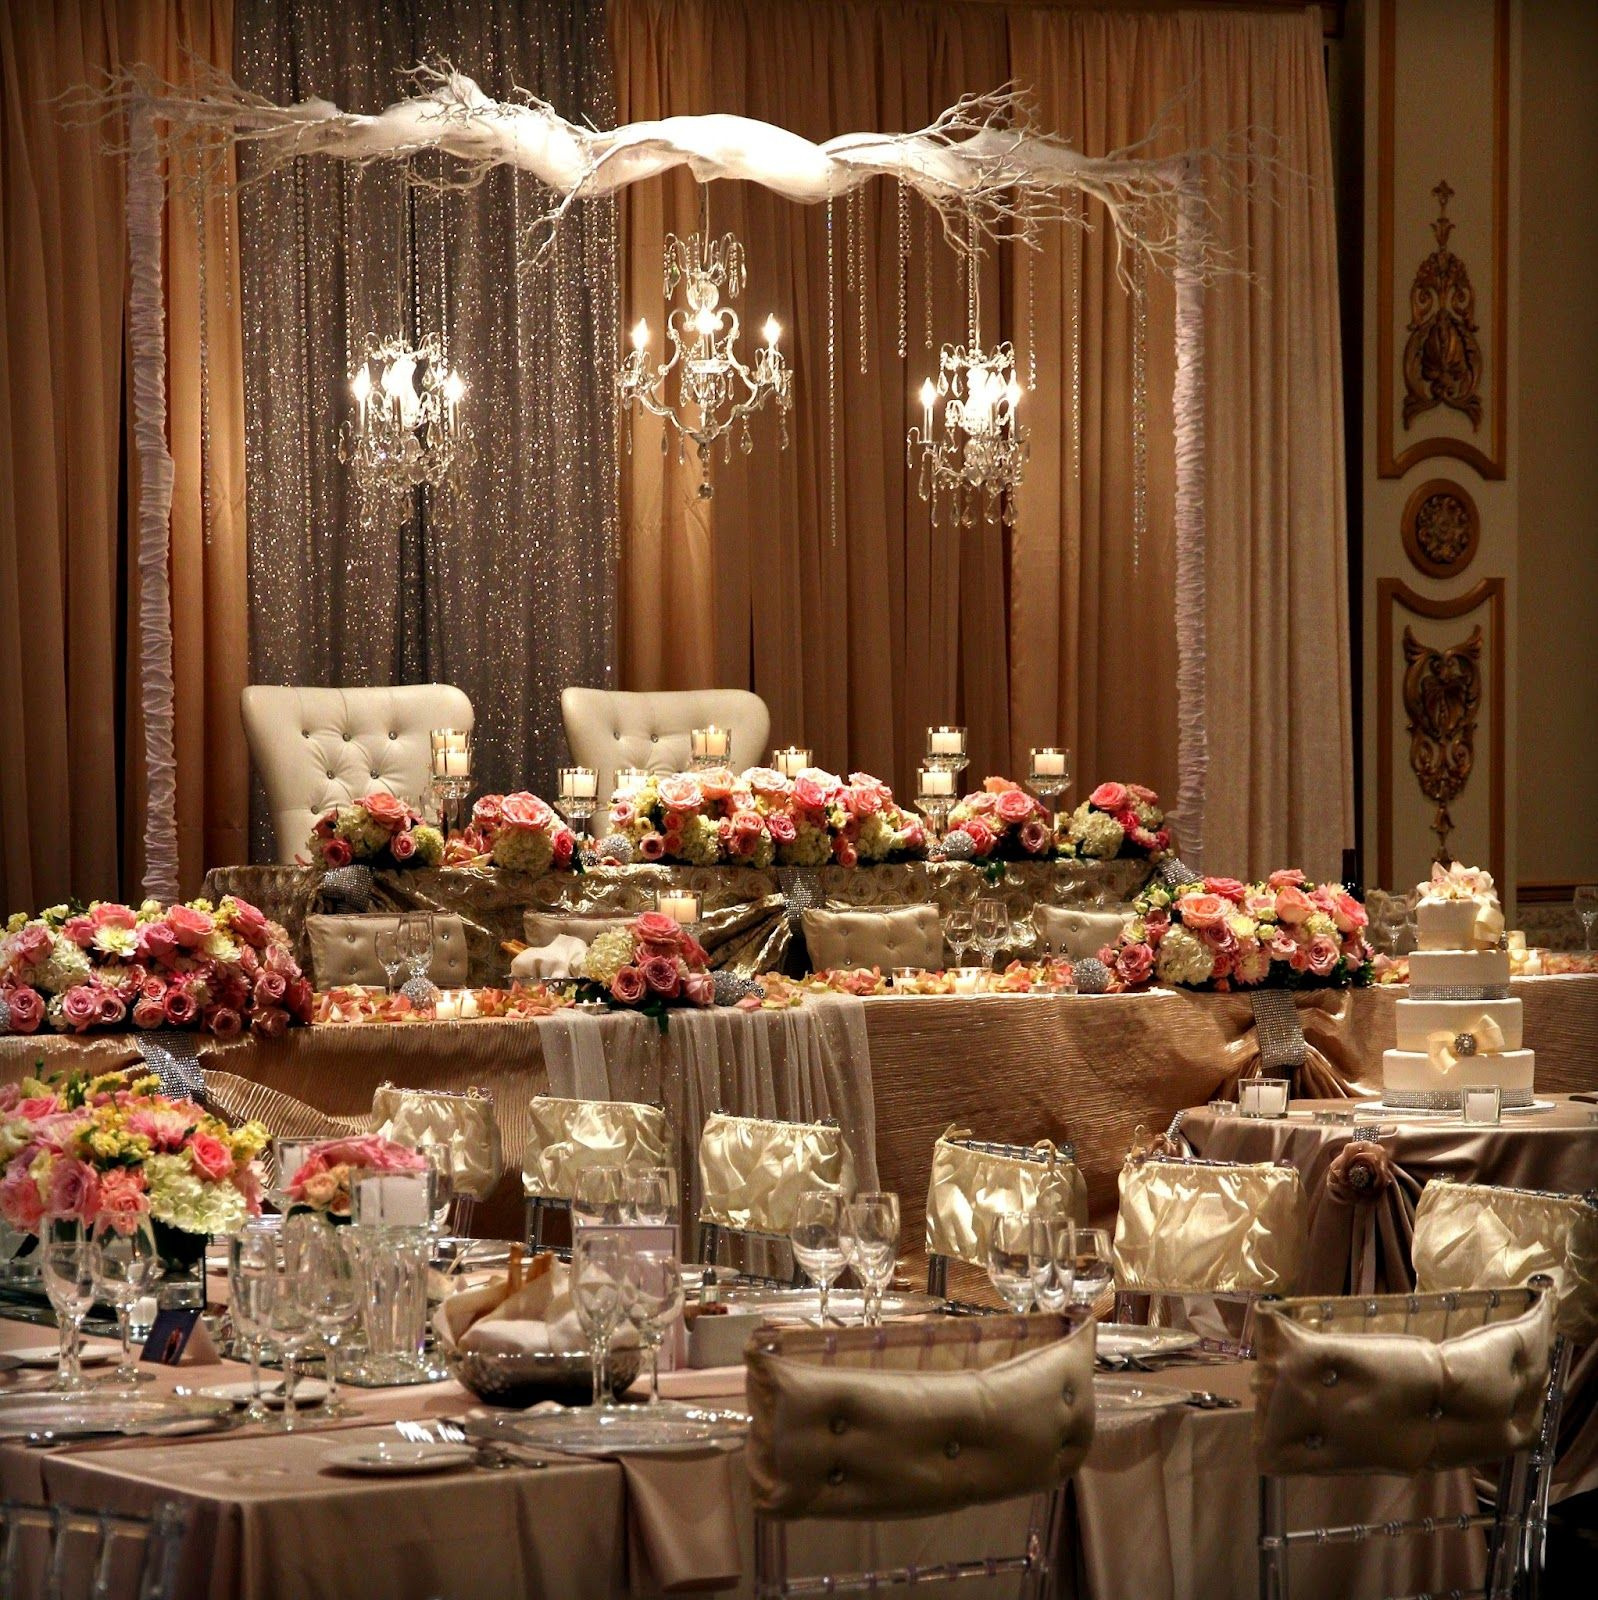 Wedding Decorations Re Were Doing Our Table On The Stage Wedding Pinterest